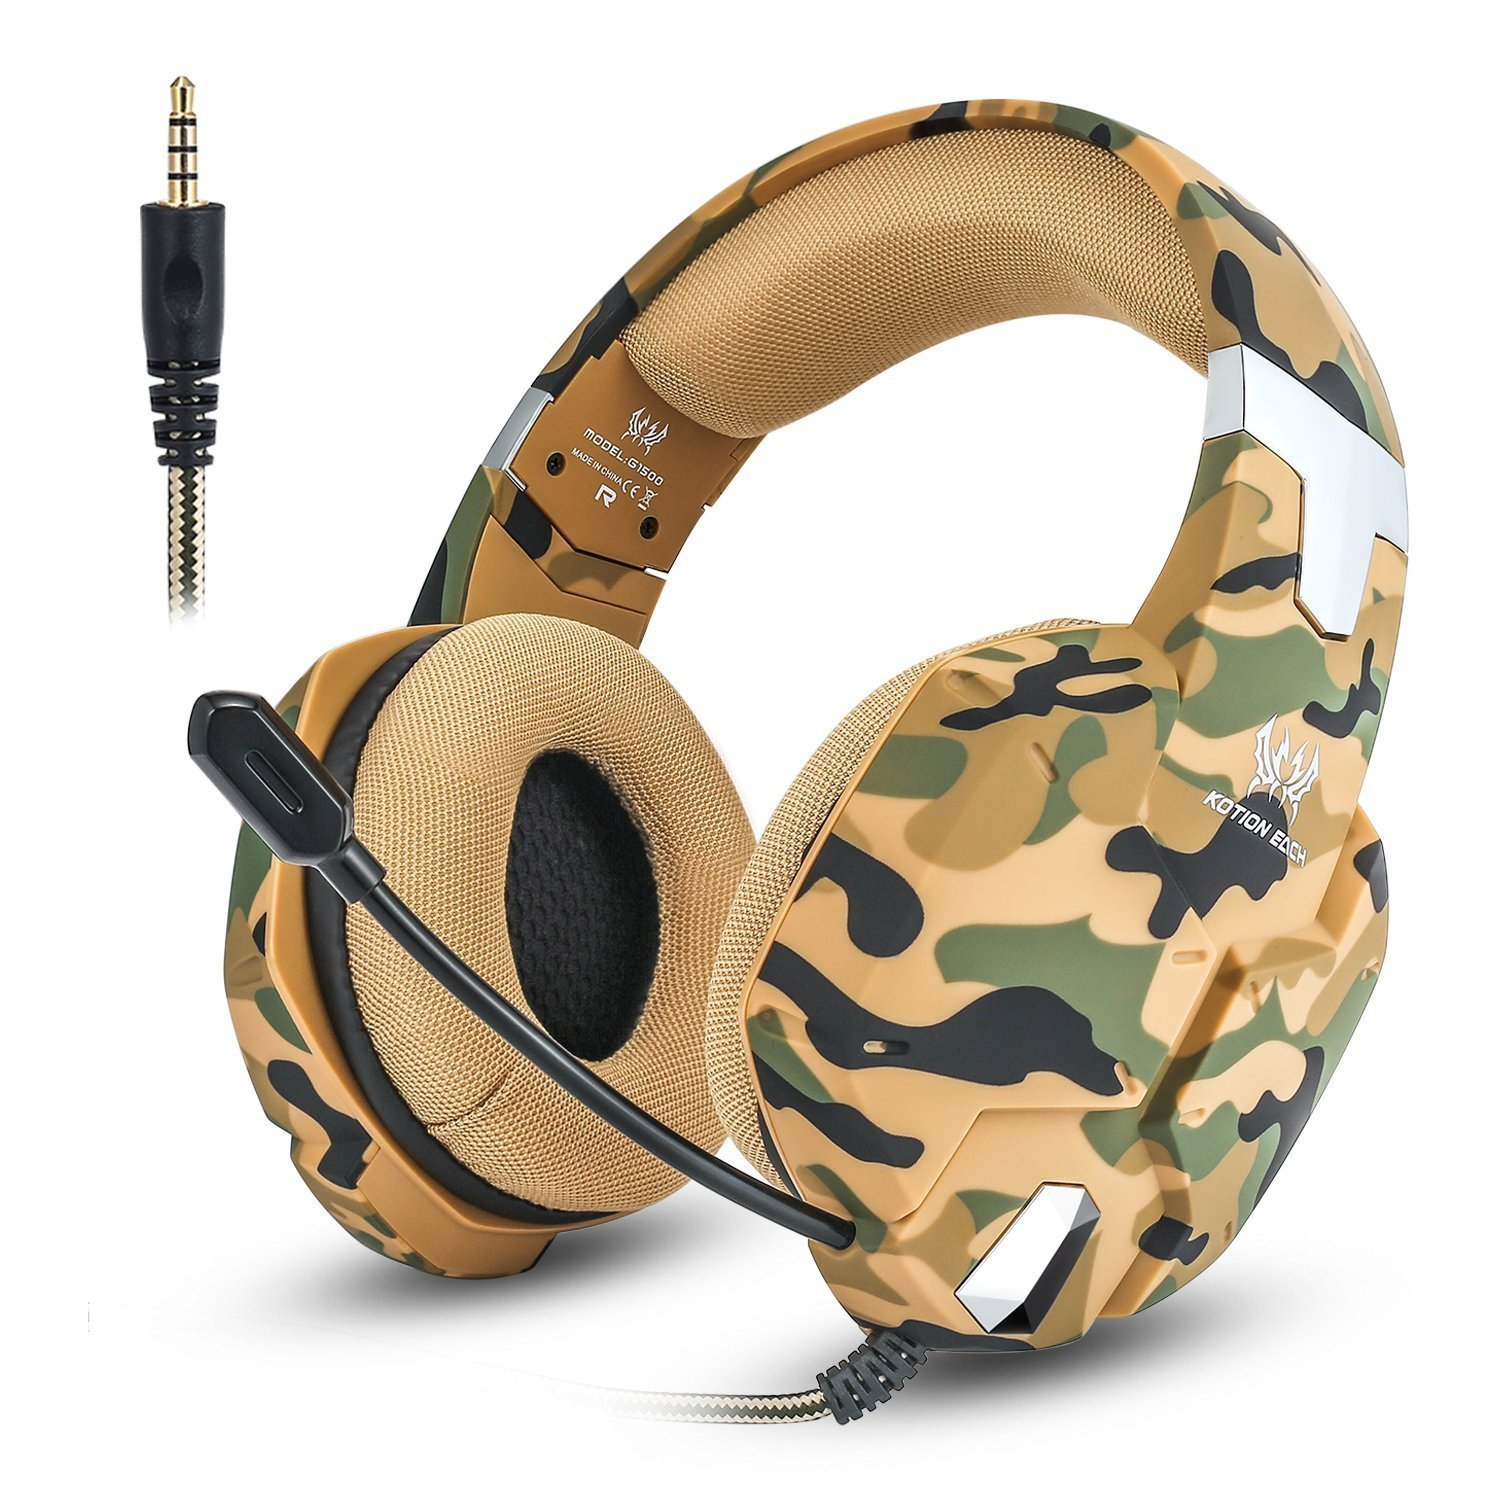 JEECOO Stereo Gaming Headphones Over-Ear Headset with Mic Soft Earmuff Compatible with Xbox One Playstation 4 PC Laptop Tablet PC G1500